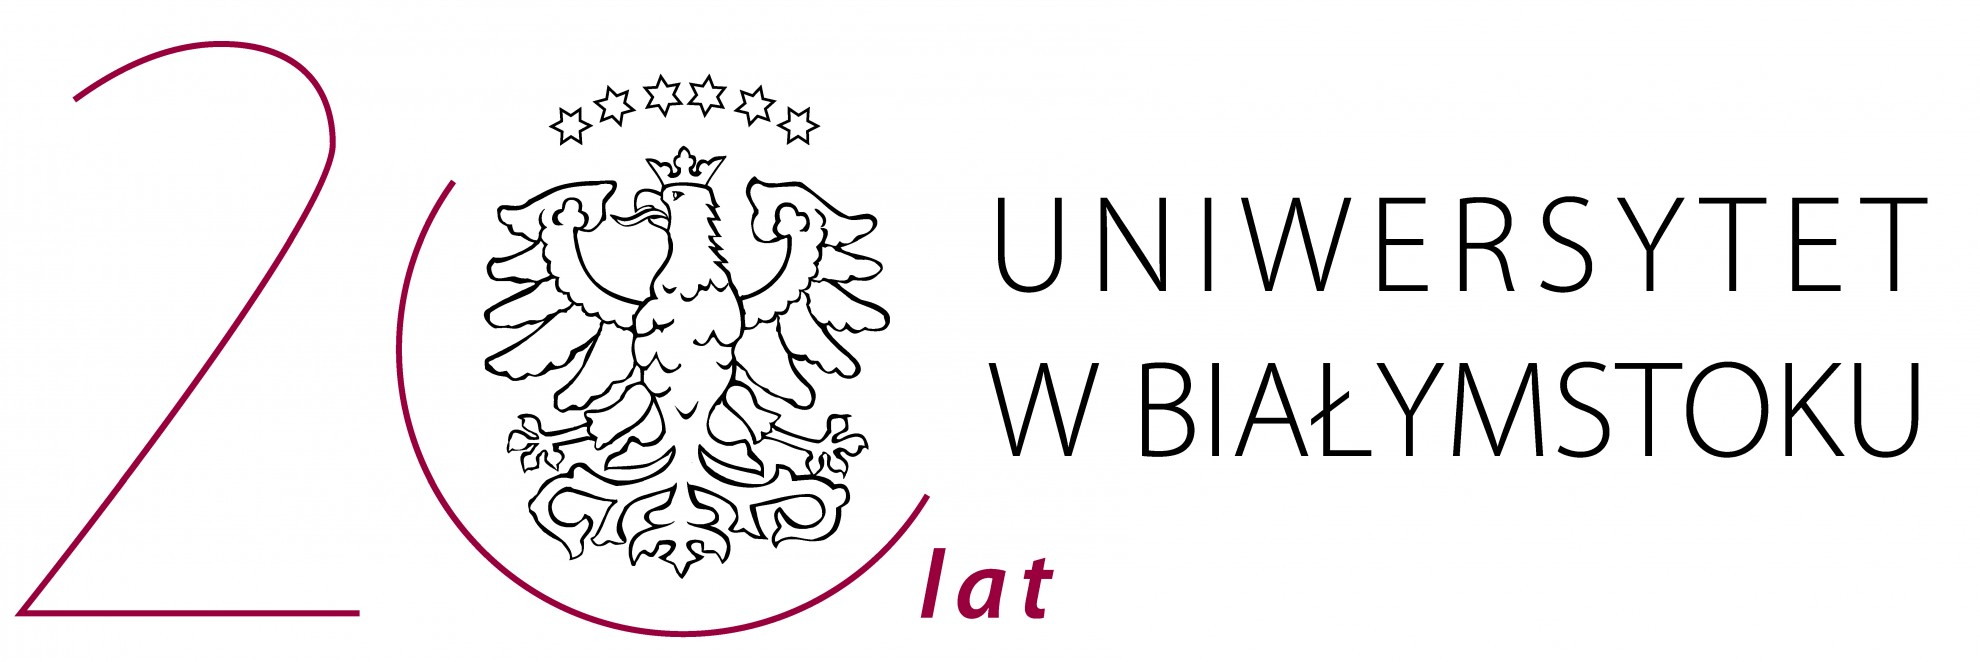 20 Years of The University of Bialystok